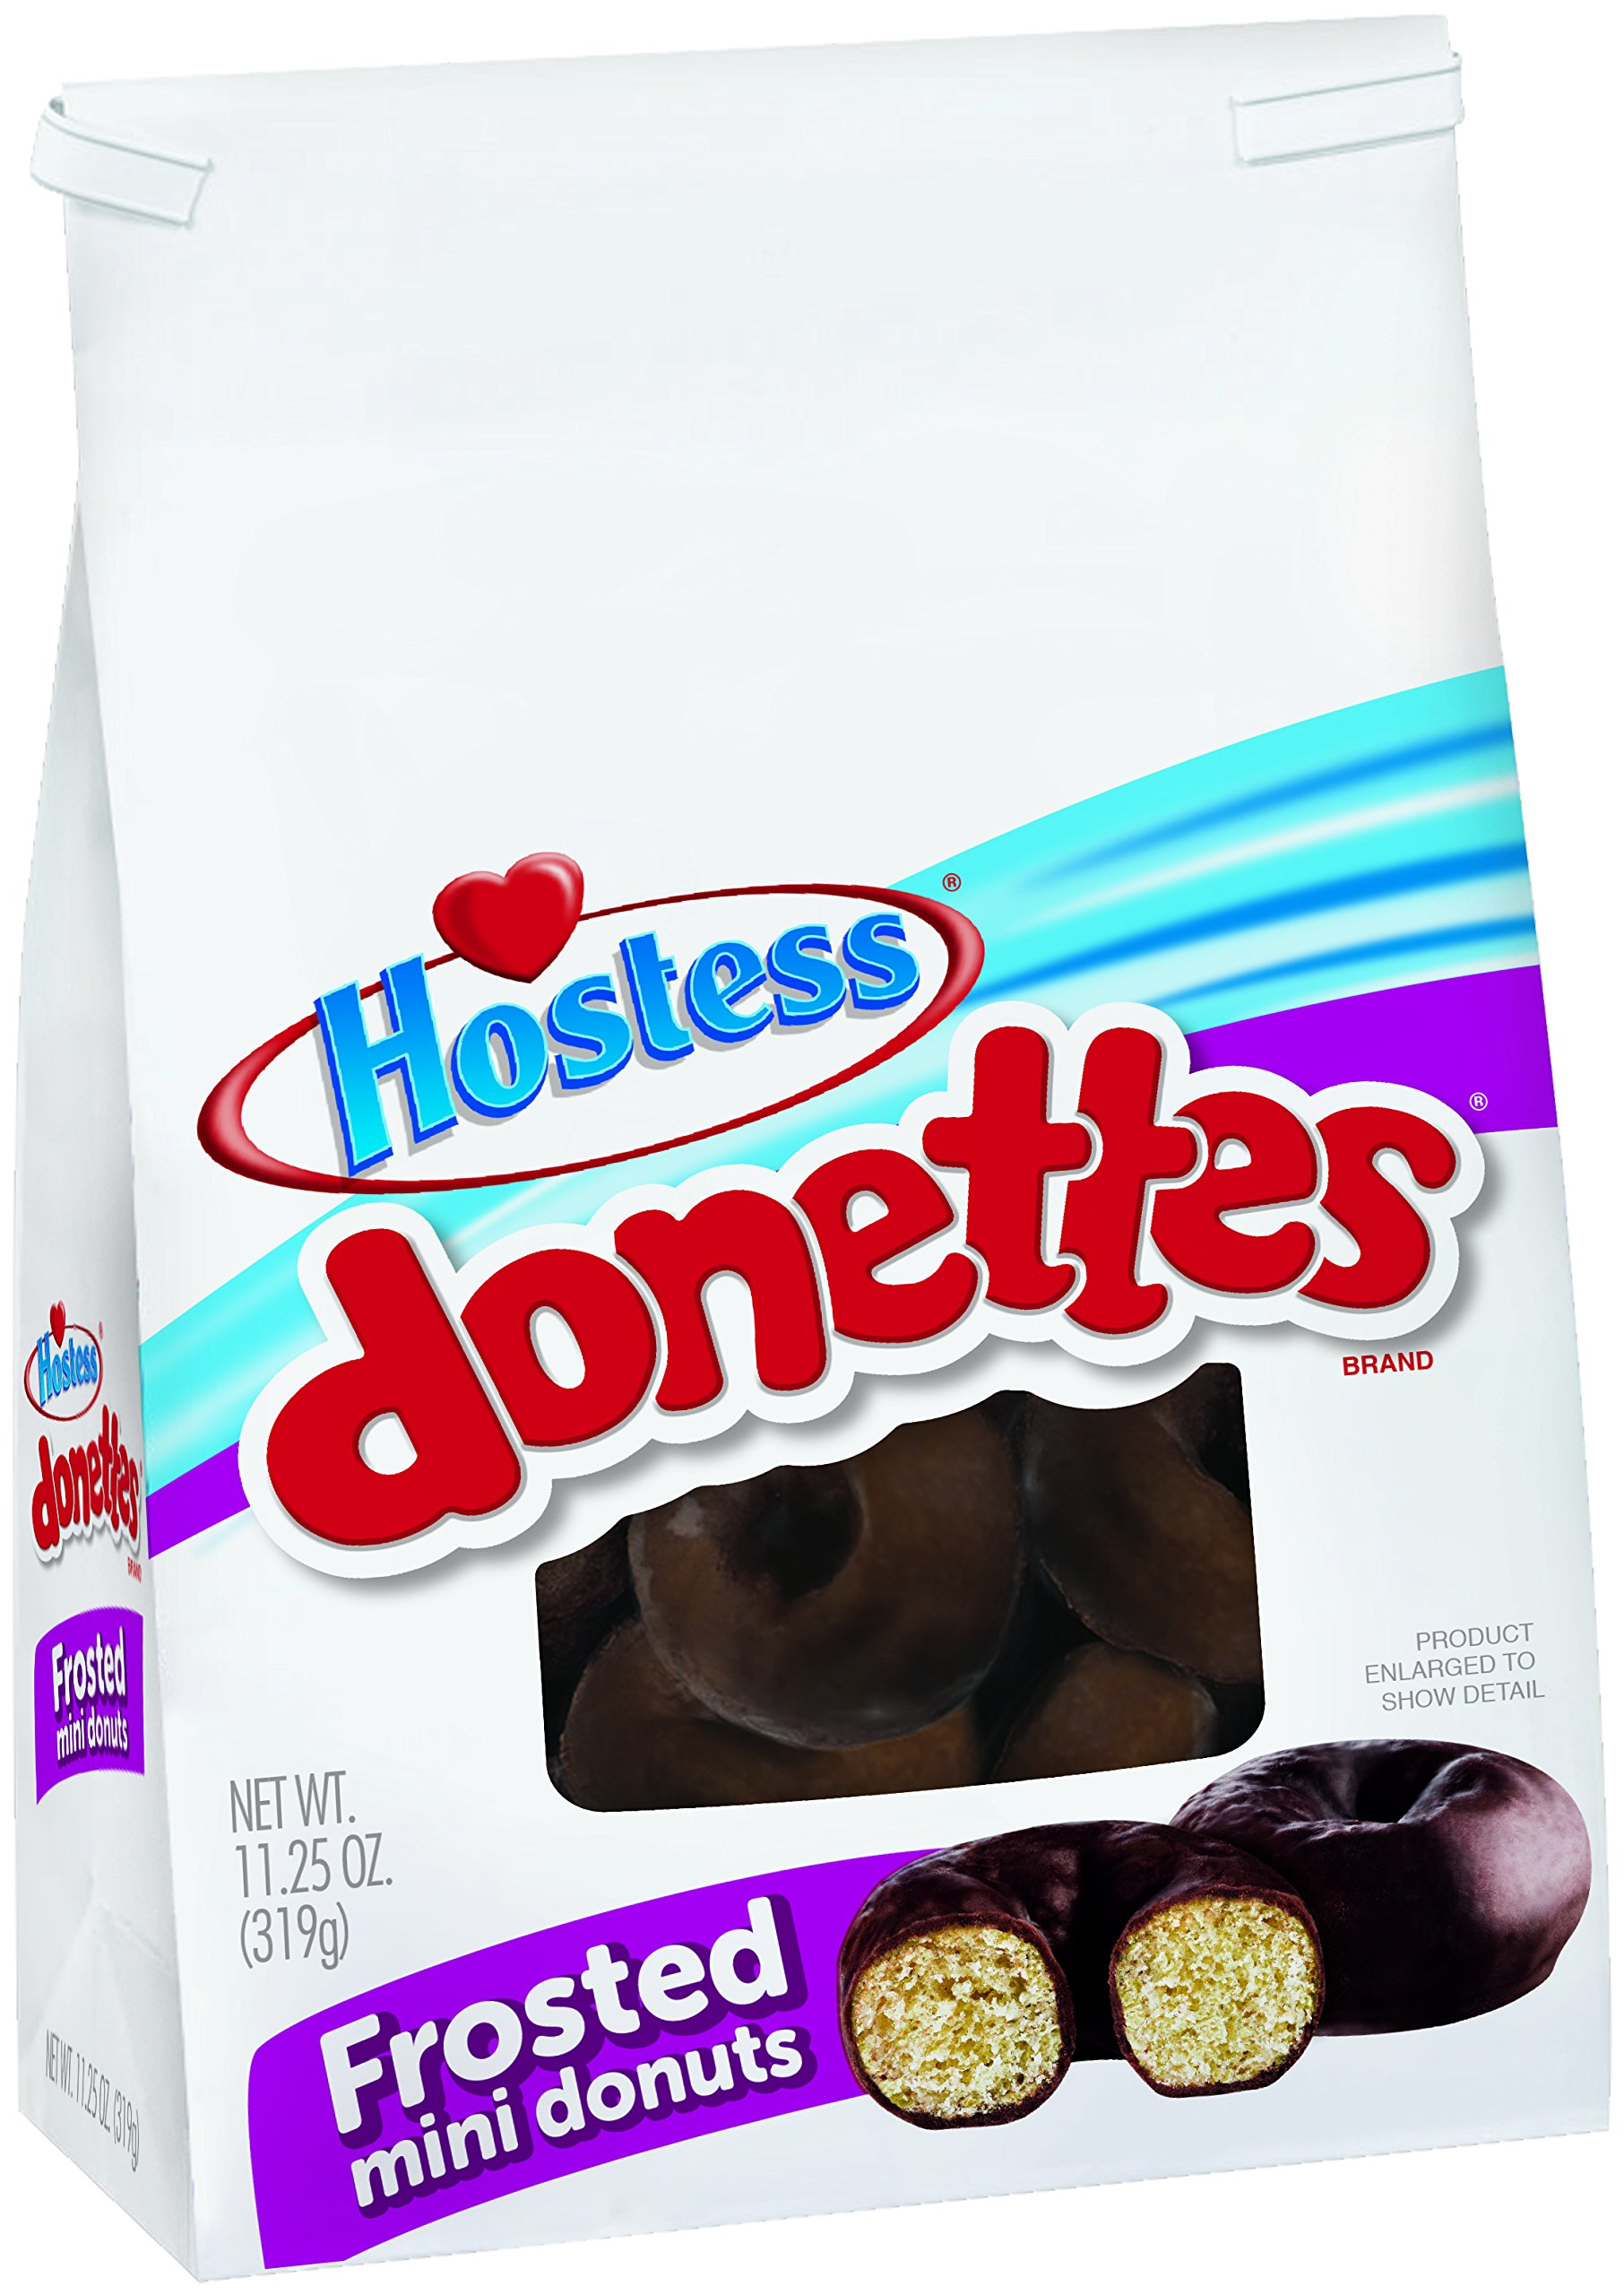 Hostess Donettes Mini Donuts, Frosted, 11.25 Ounce (Pack of 6) by Hostess